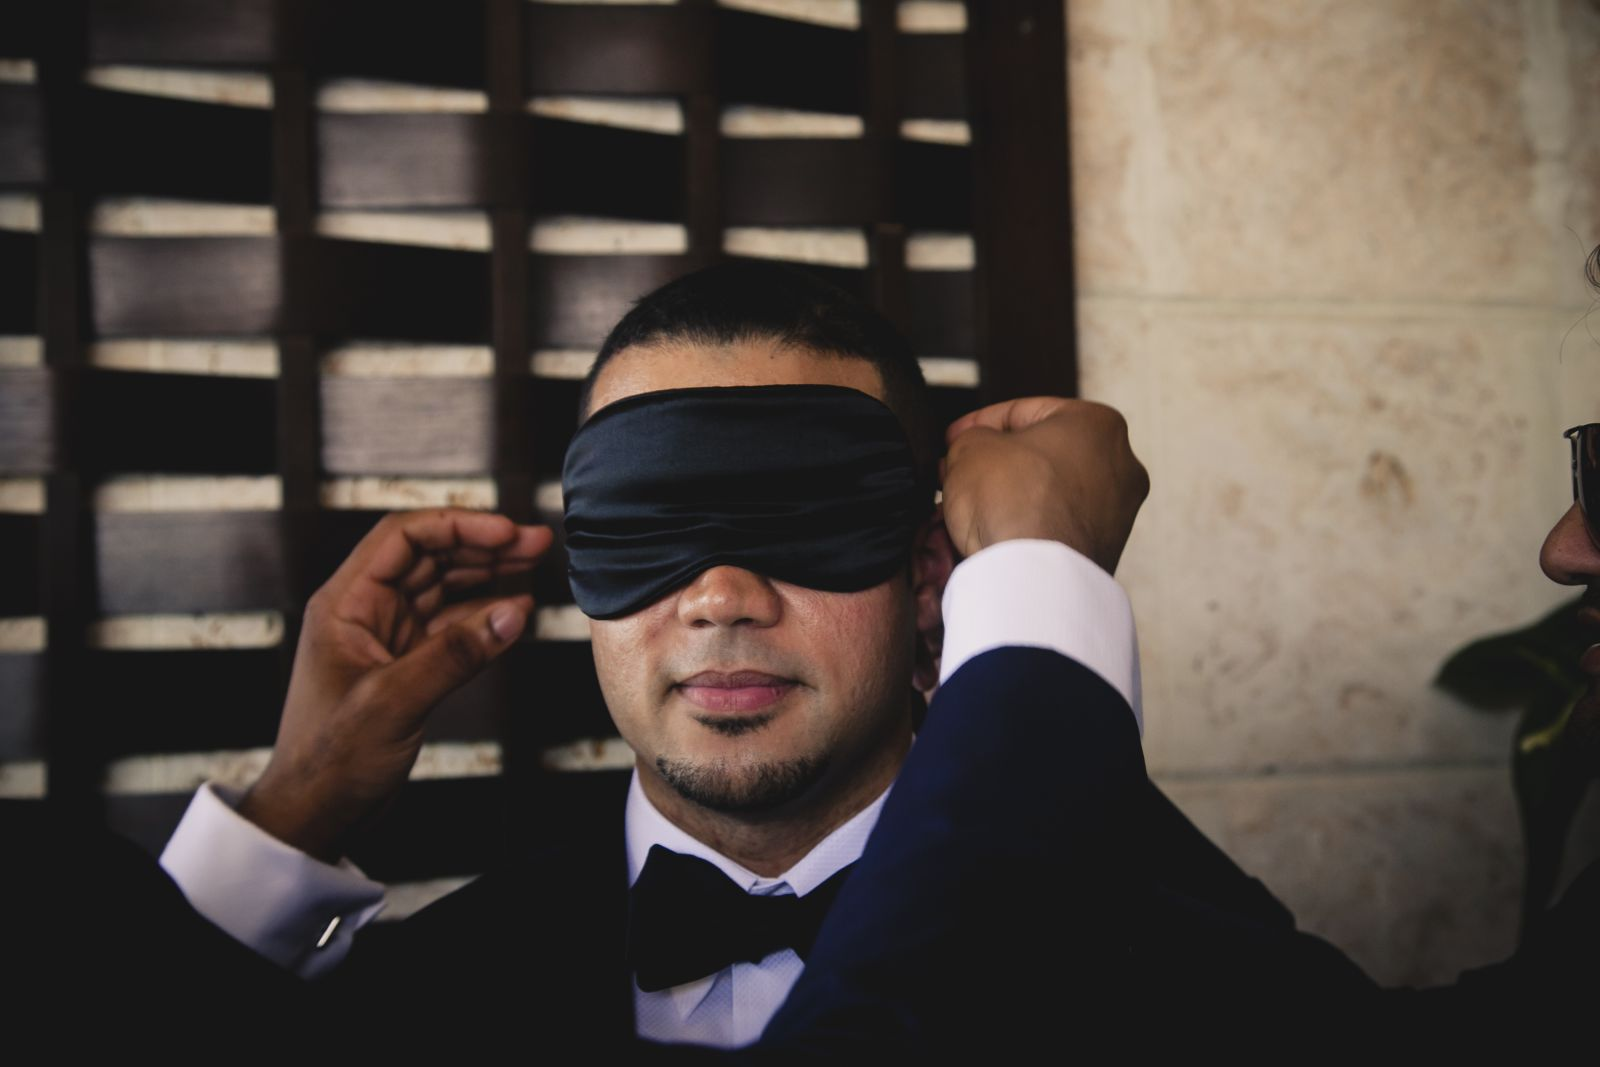 Blindfolded groom